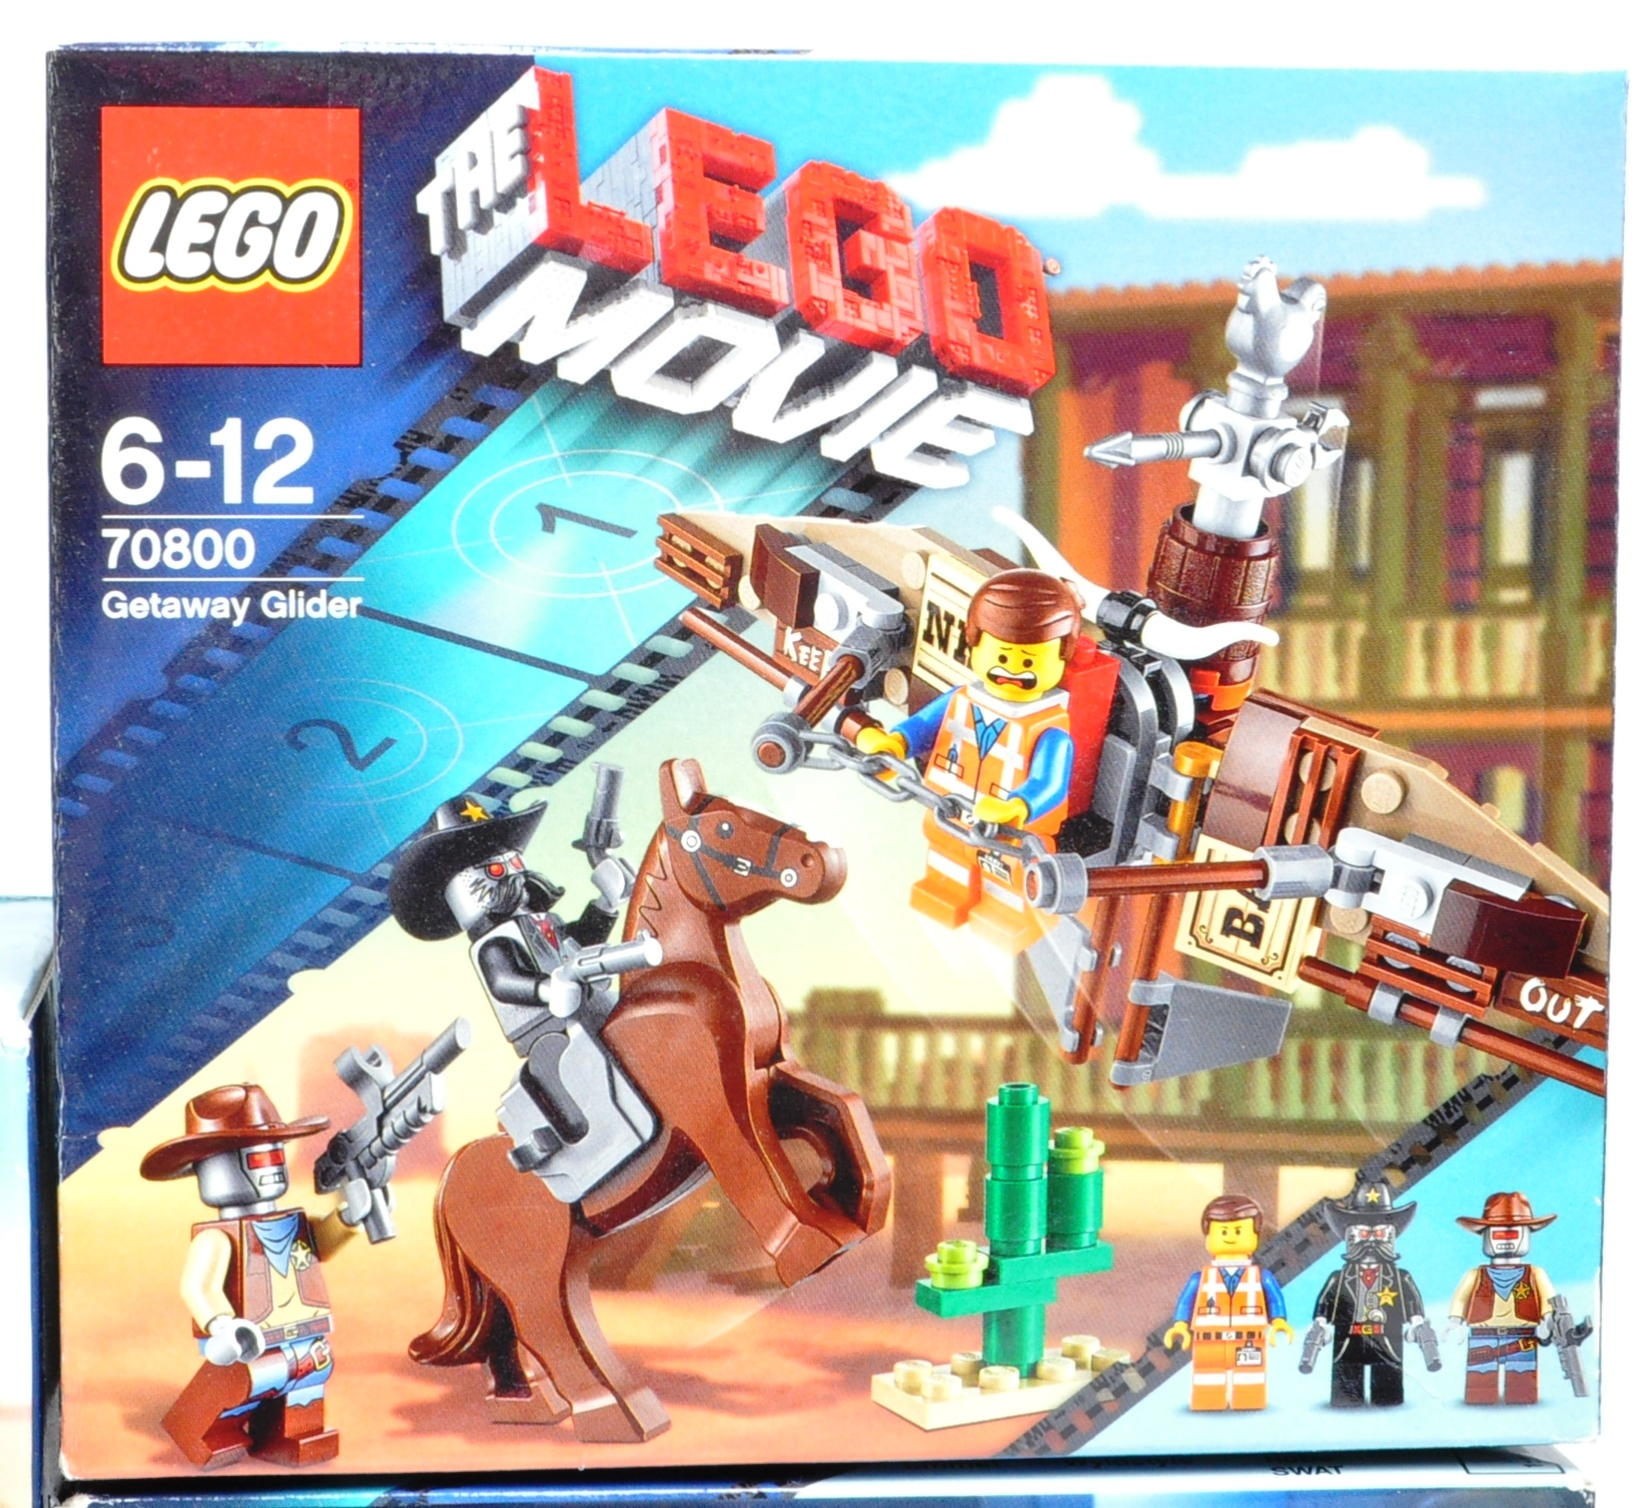 LEGO SETS - THE LEGO MOVIE - COLLECTION OF X7 LEGO MOVIE SETS - Image 8 of 17